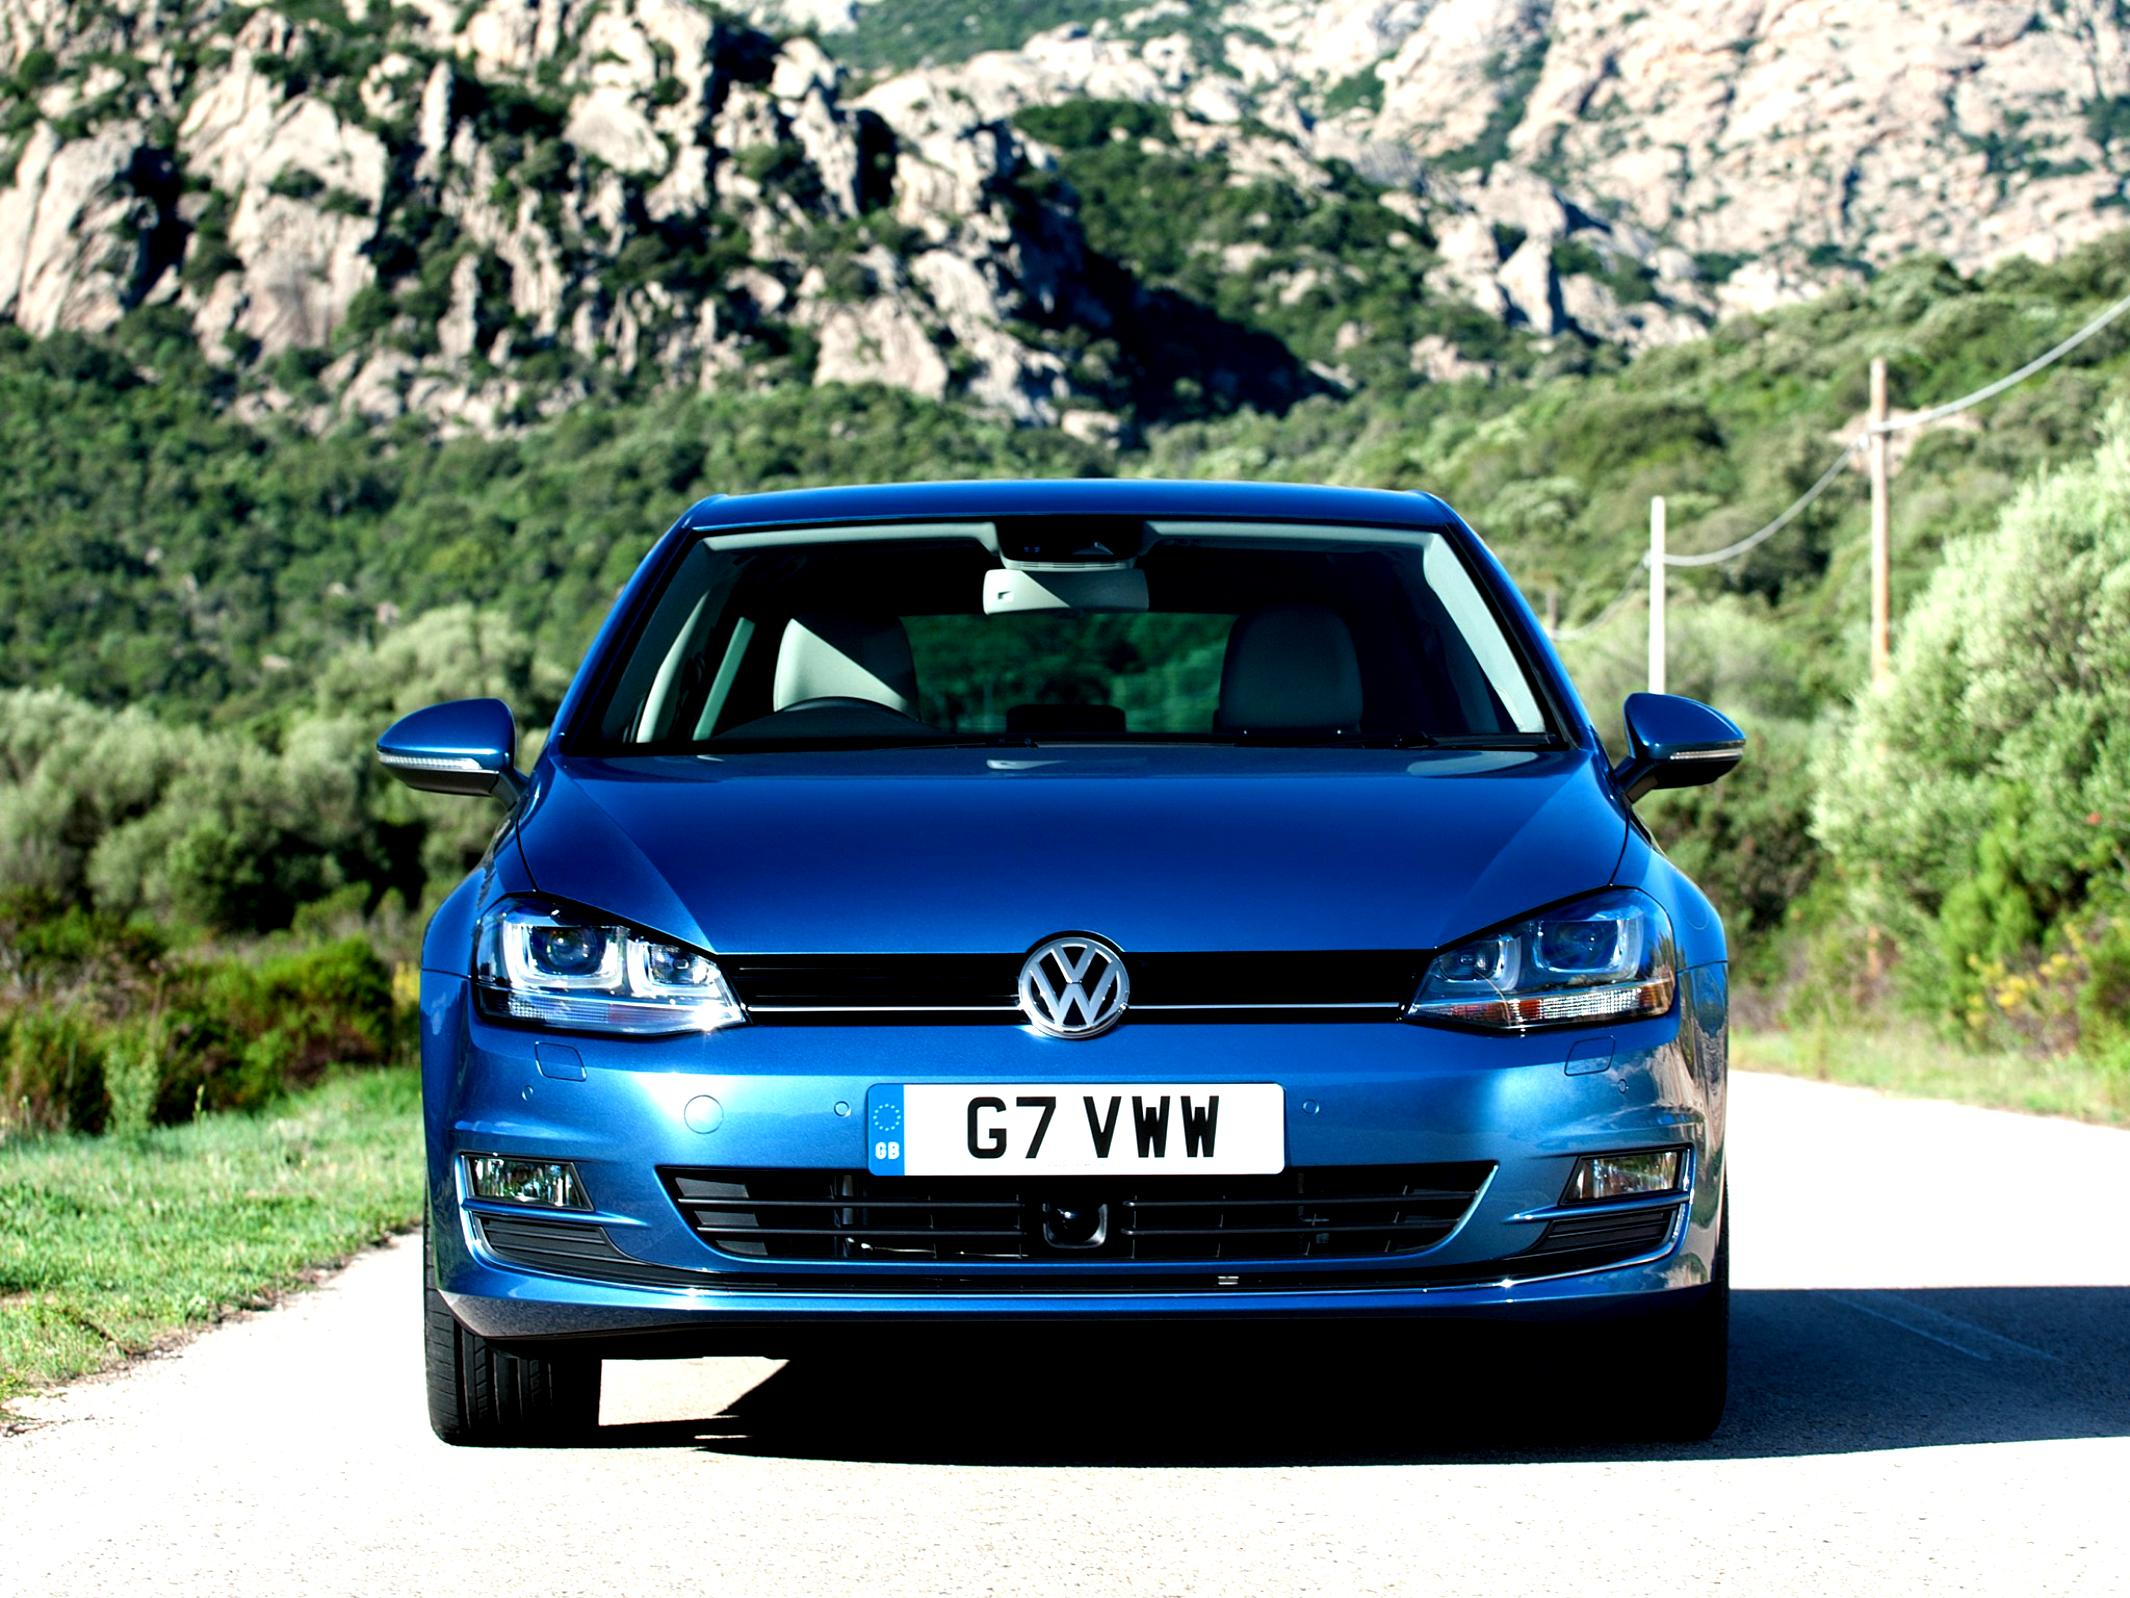 Volkswagen Golf VII 5 Doors 2012 #54